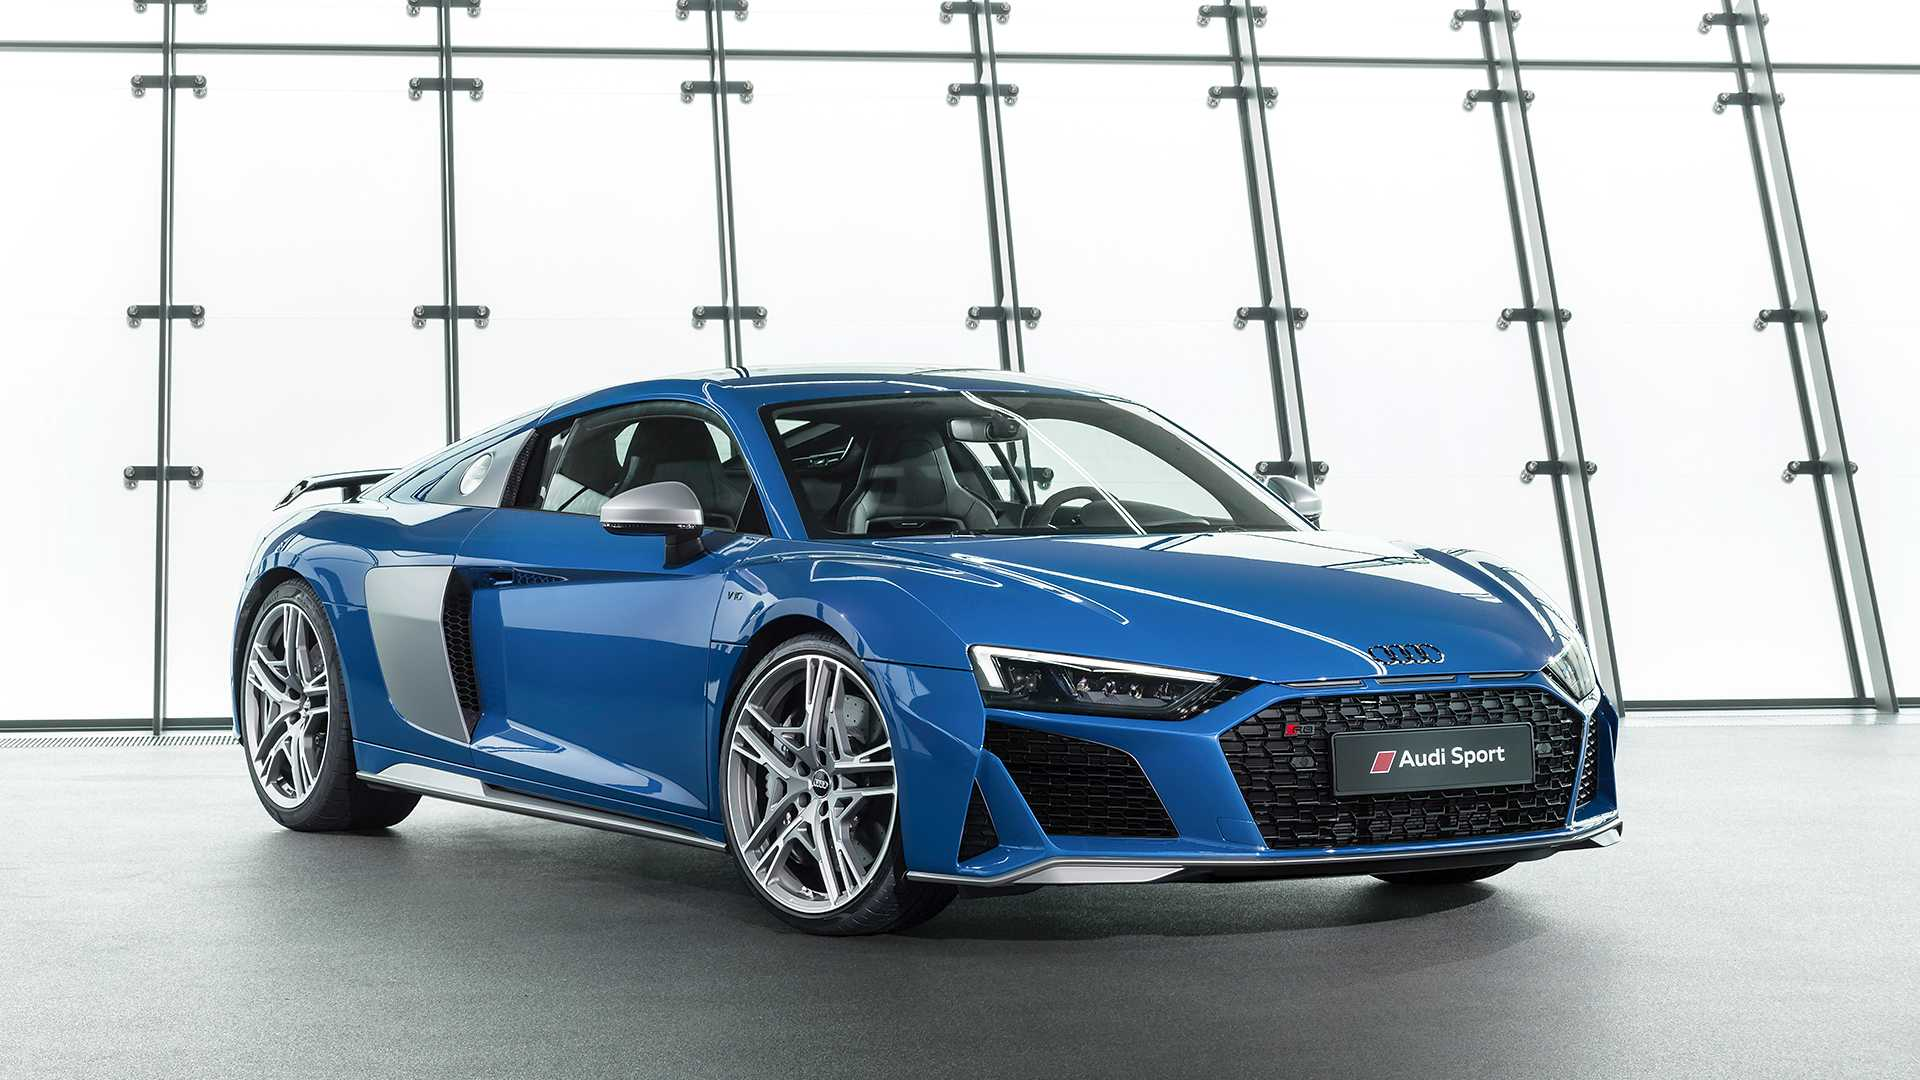 2020 Audi R8 V10 Decennium Costs An Eye Watering 214 995